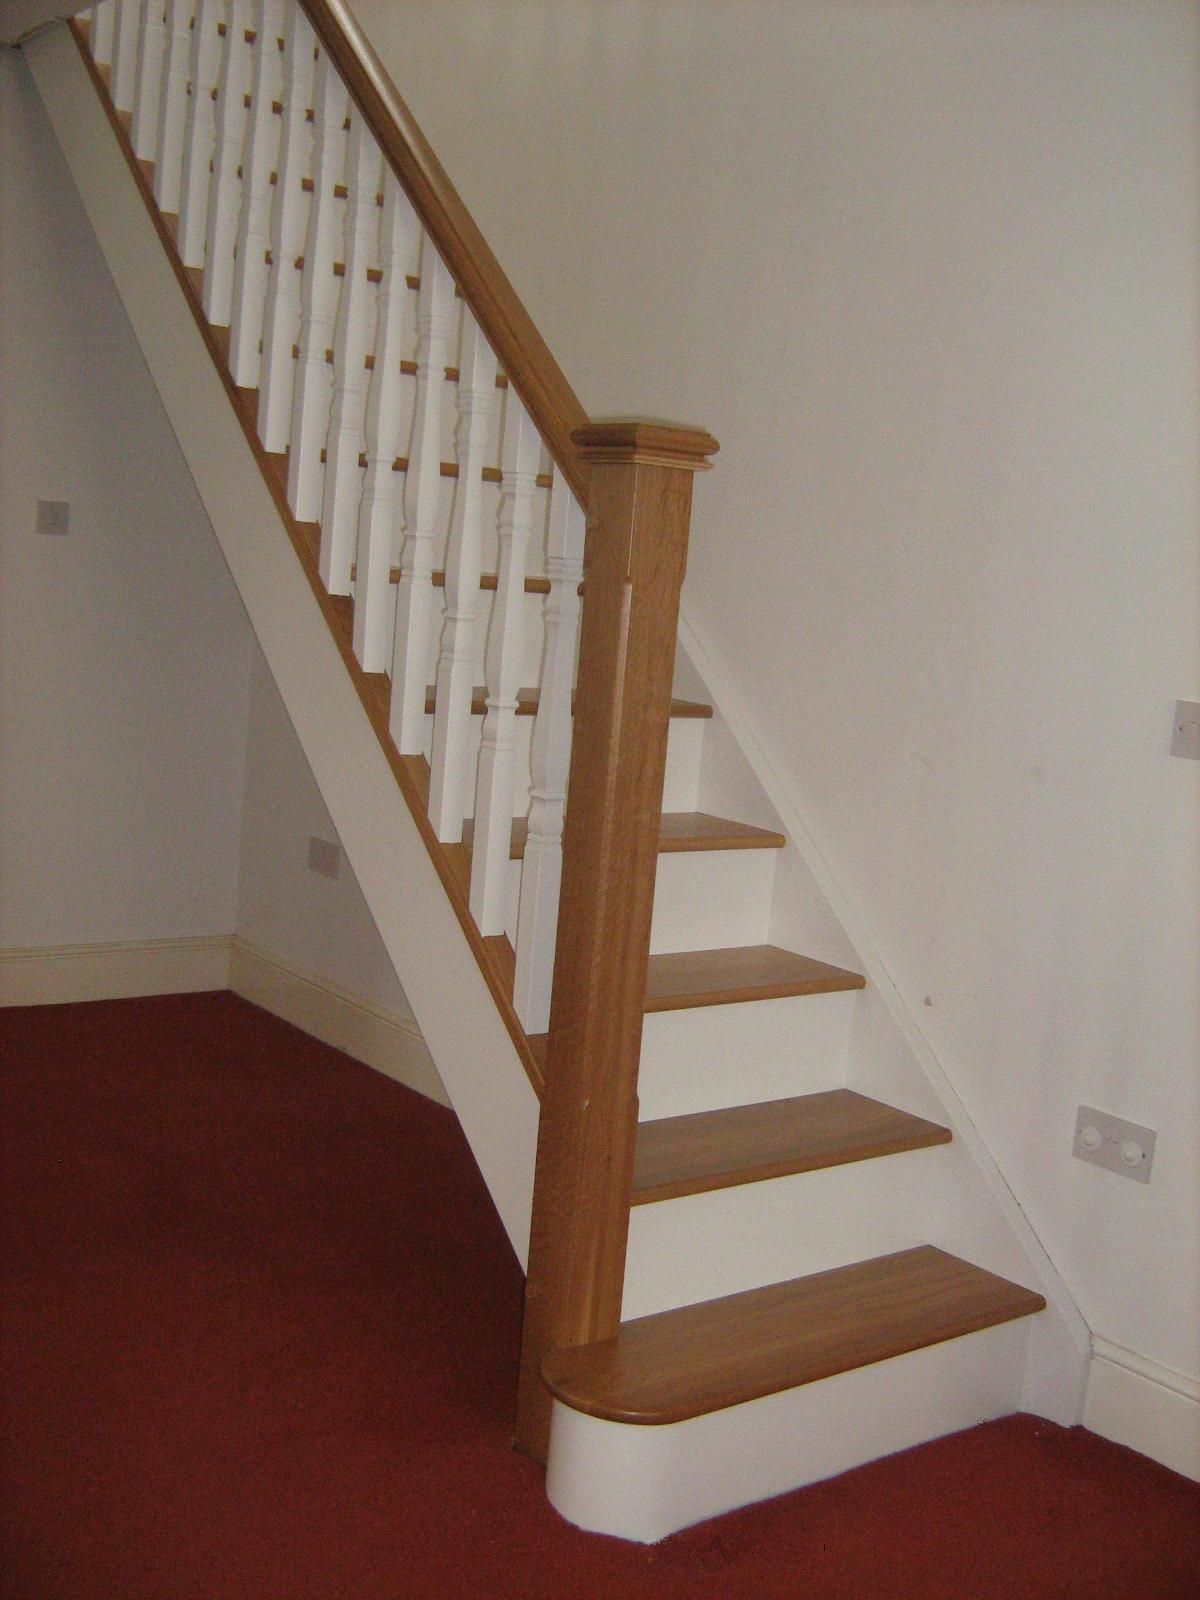 Painted Wood Stairs White Oak Staircases 2 Paint Out Some Of The Oak In White